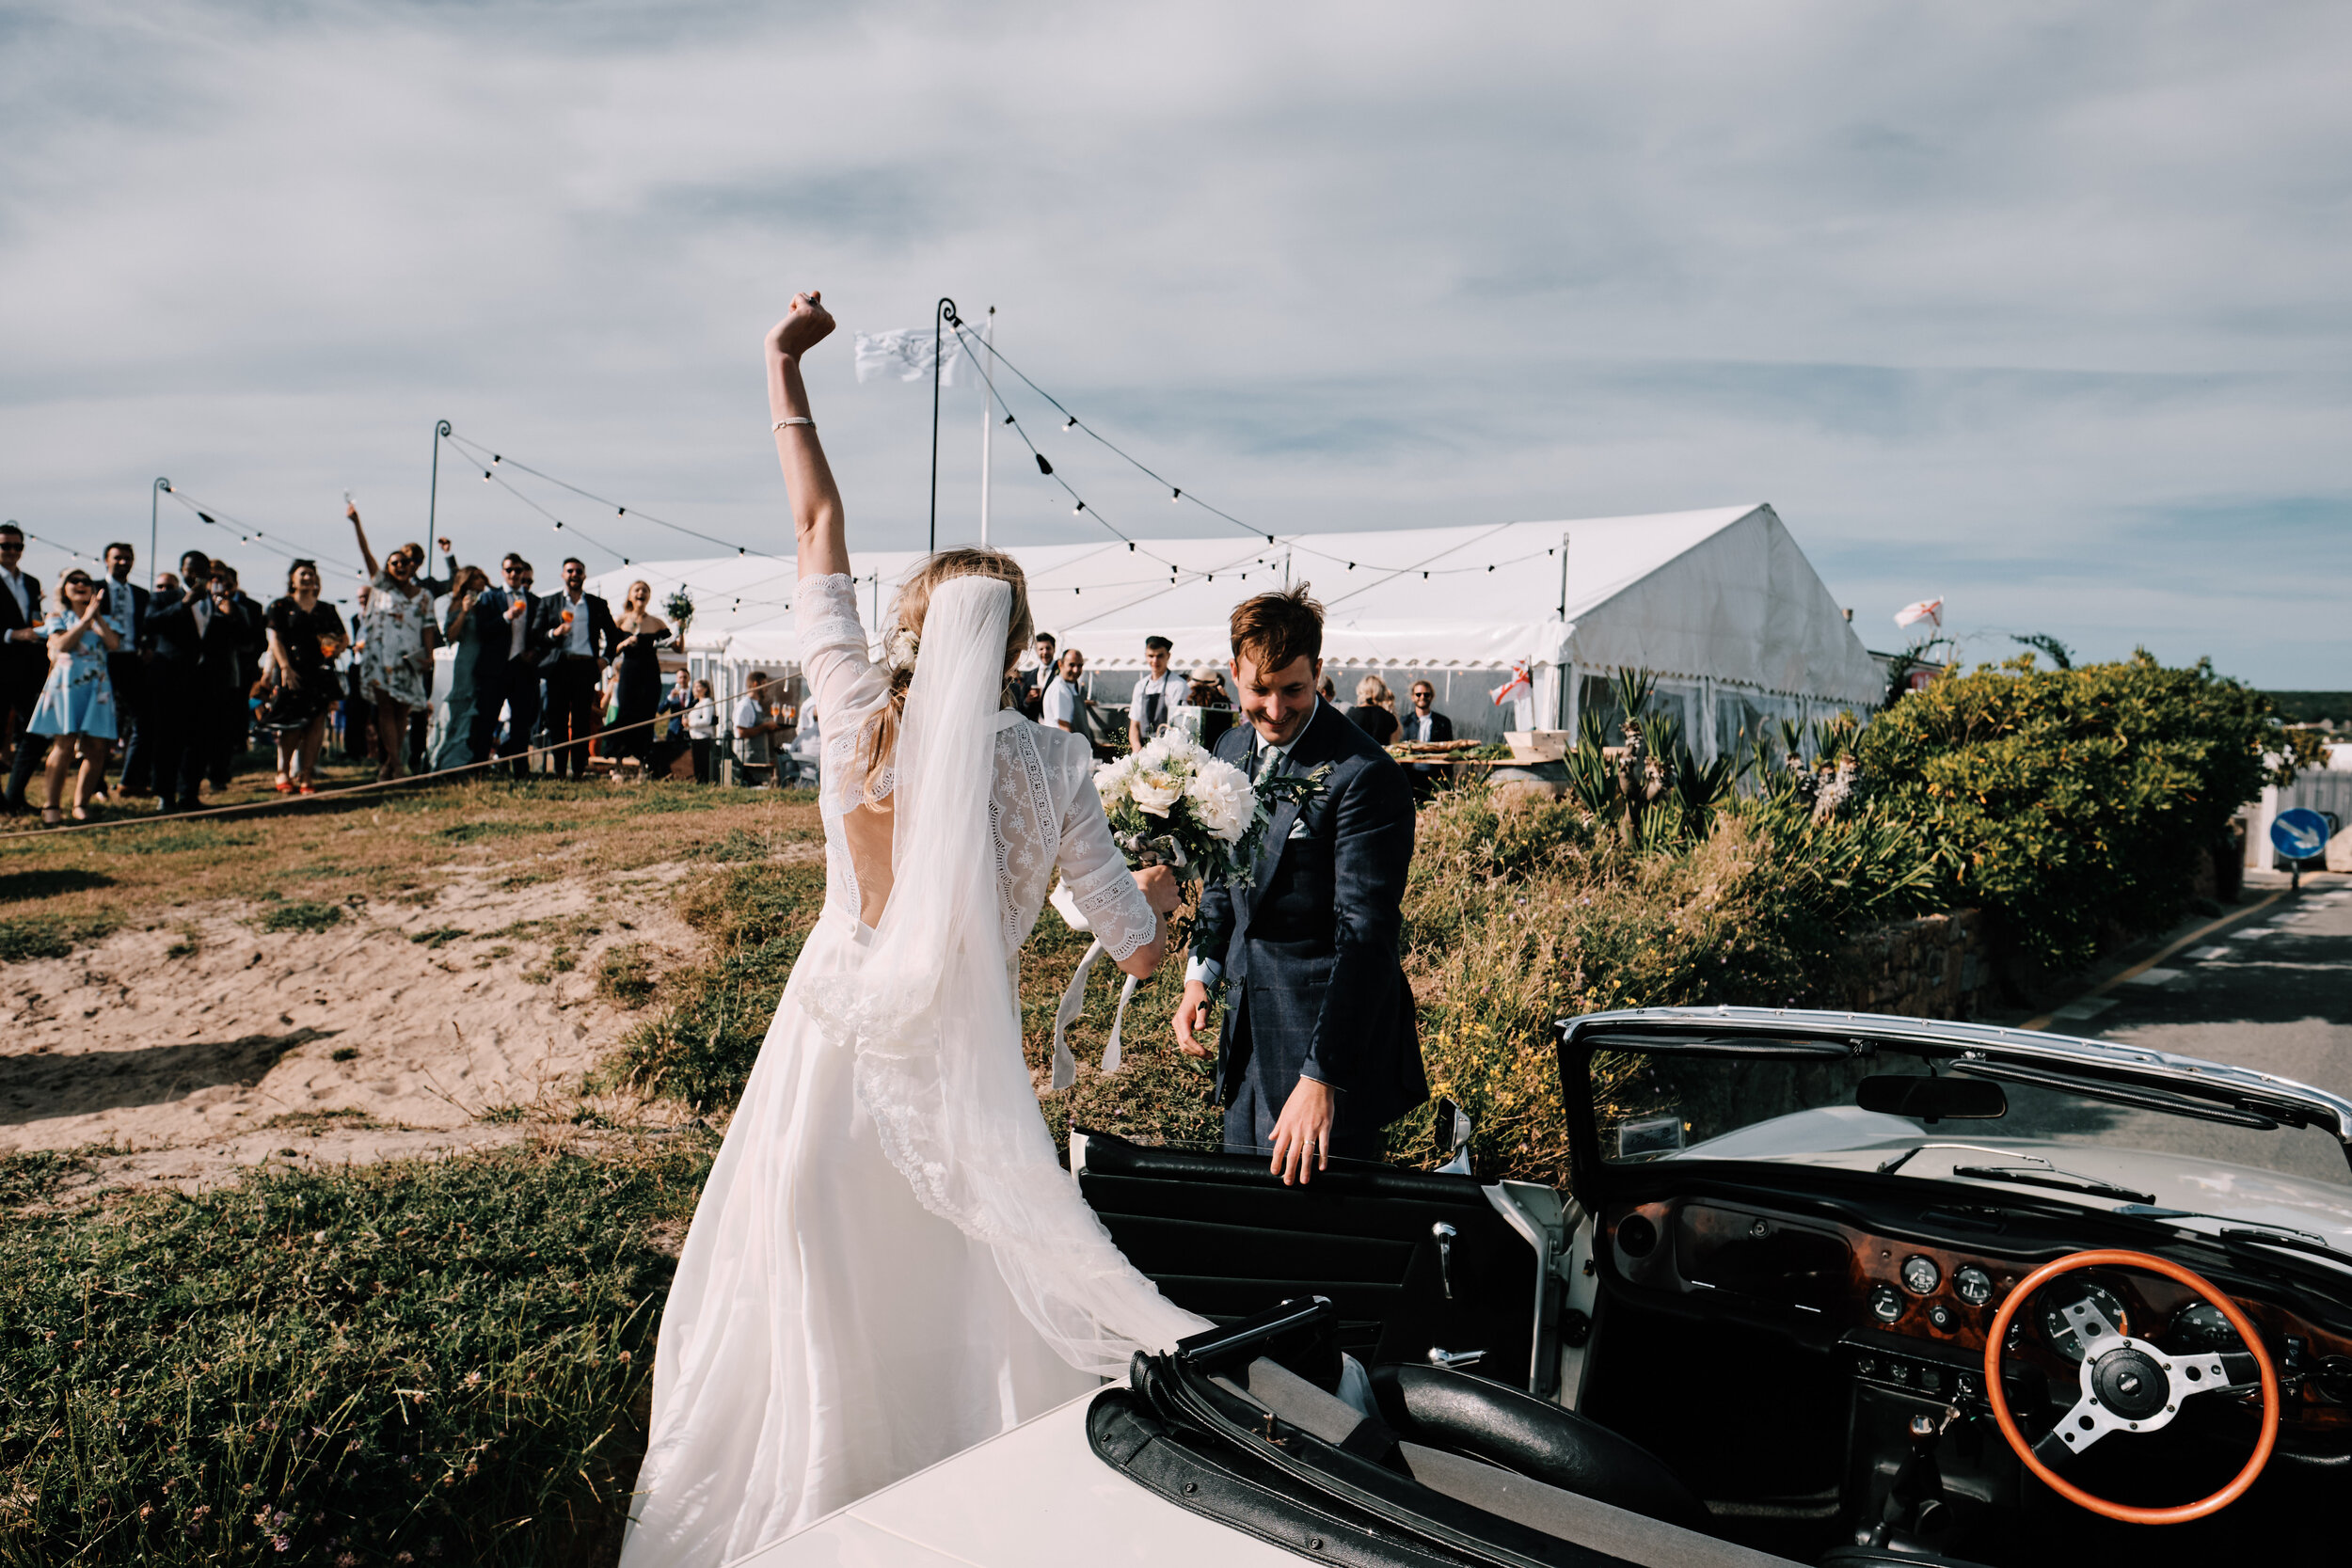 Bride Arriving at Reception Vintage Car Documentary Wedding photography